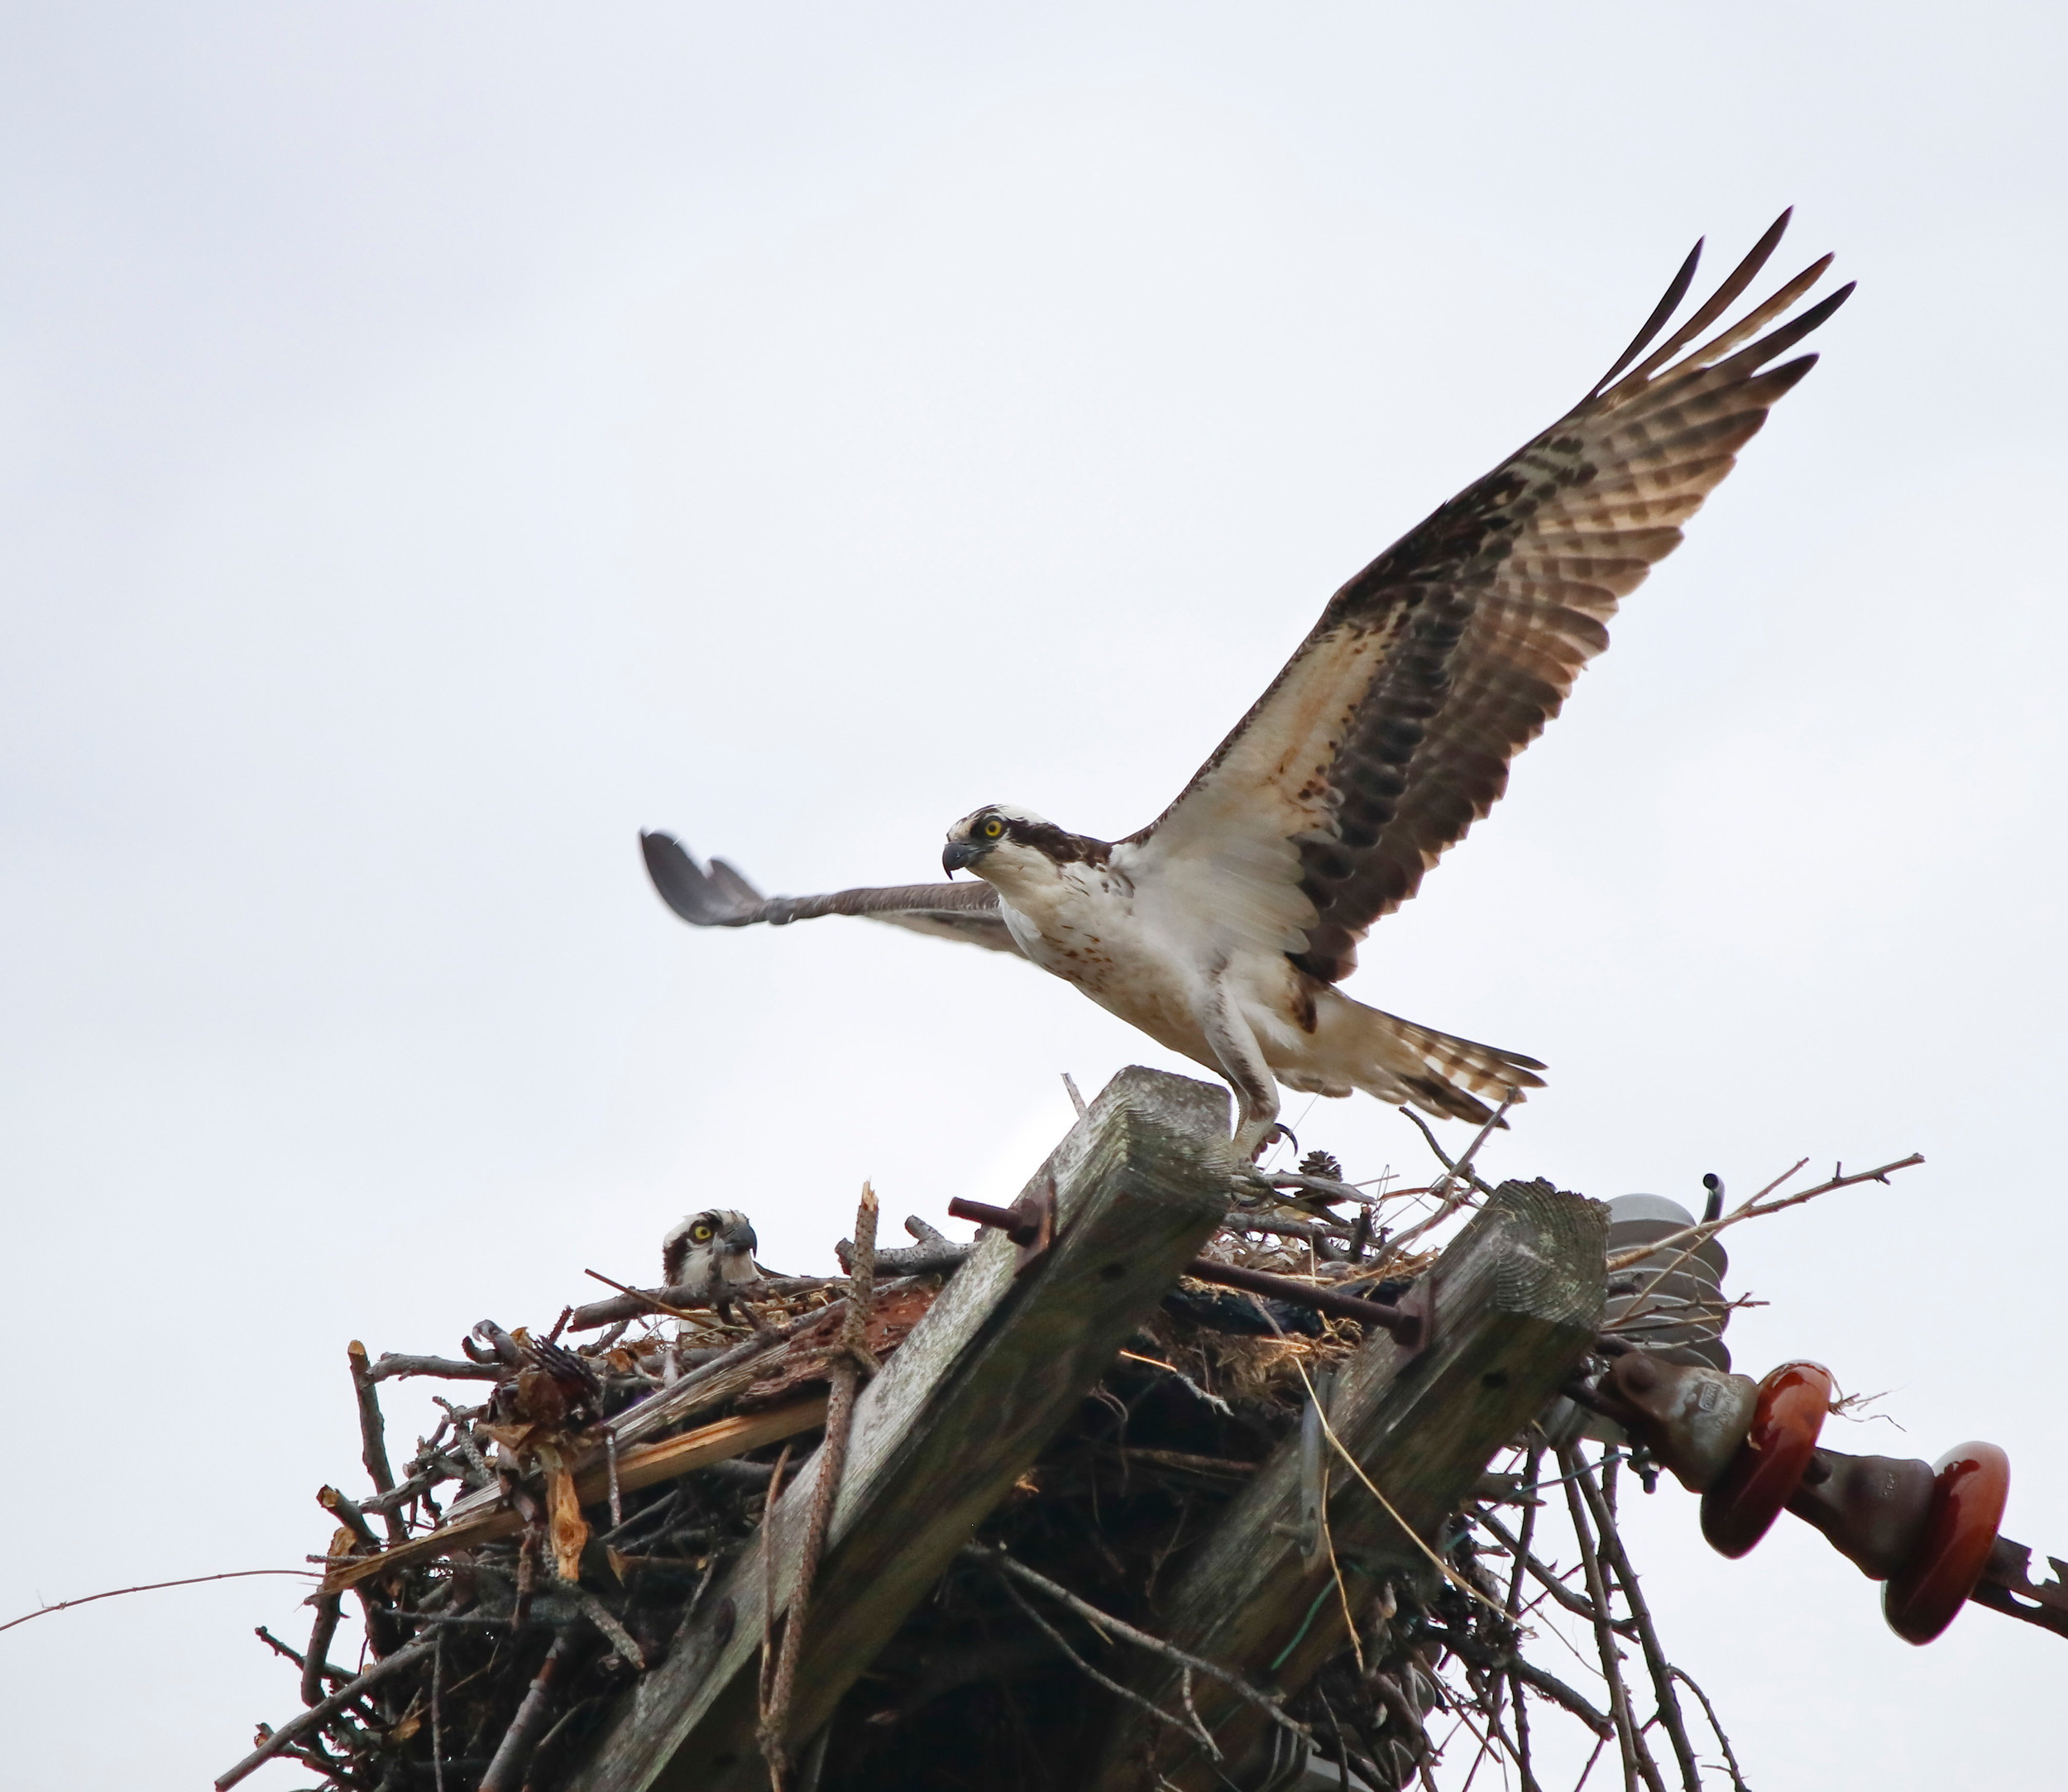 An osprey nesting platform stands tall over the Oceanside Marine Nature Study Area.